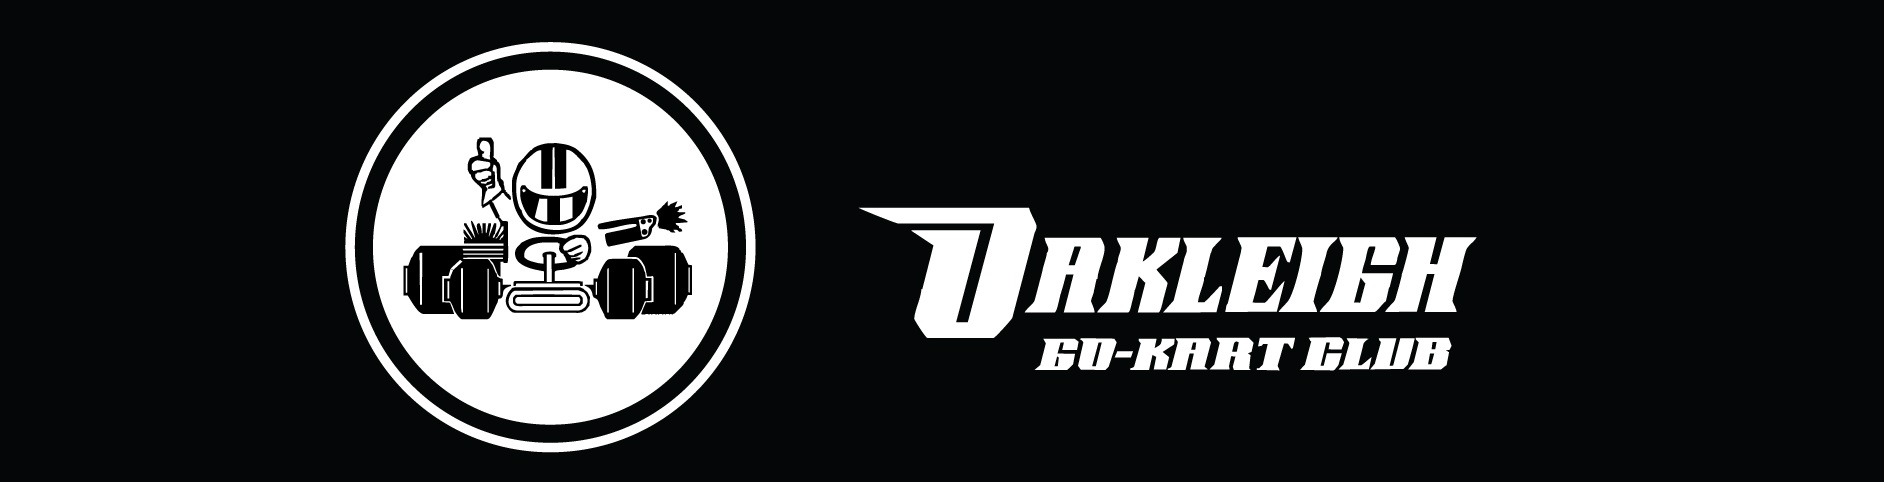 Oakleigh Go Kart Racing Club